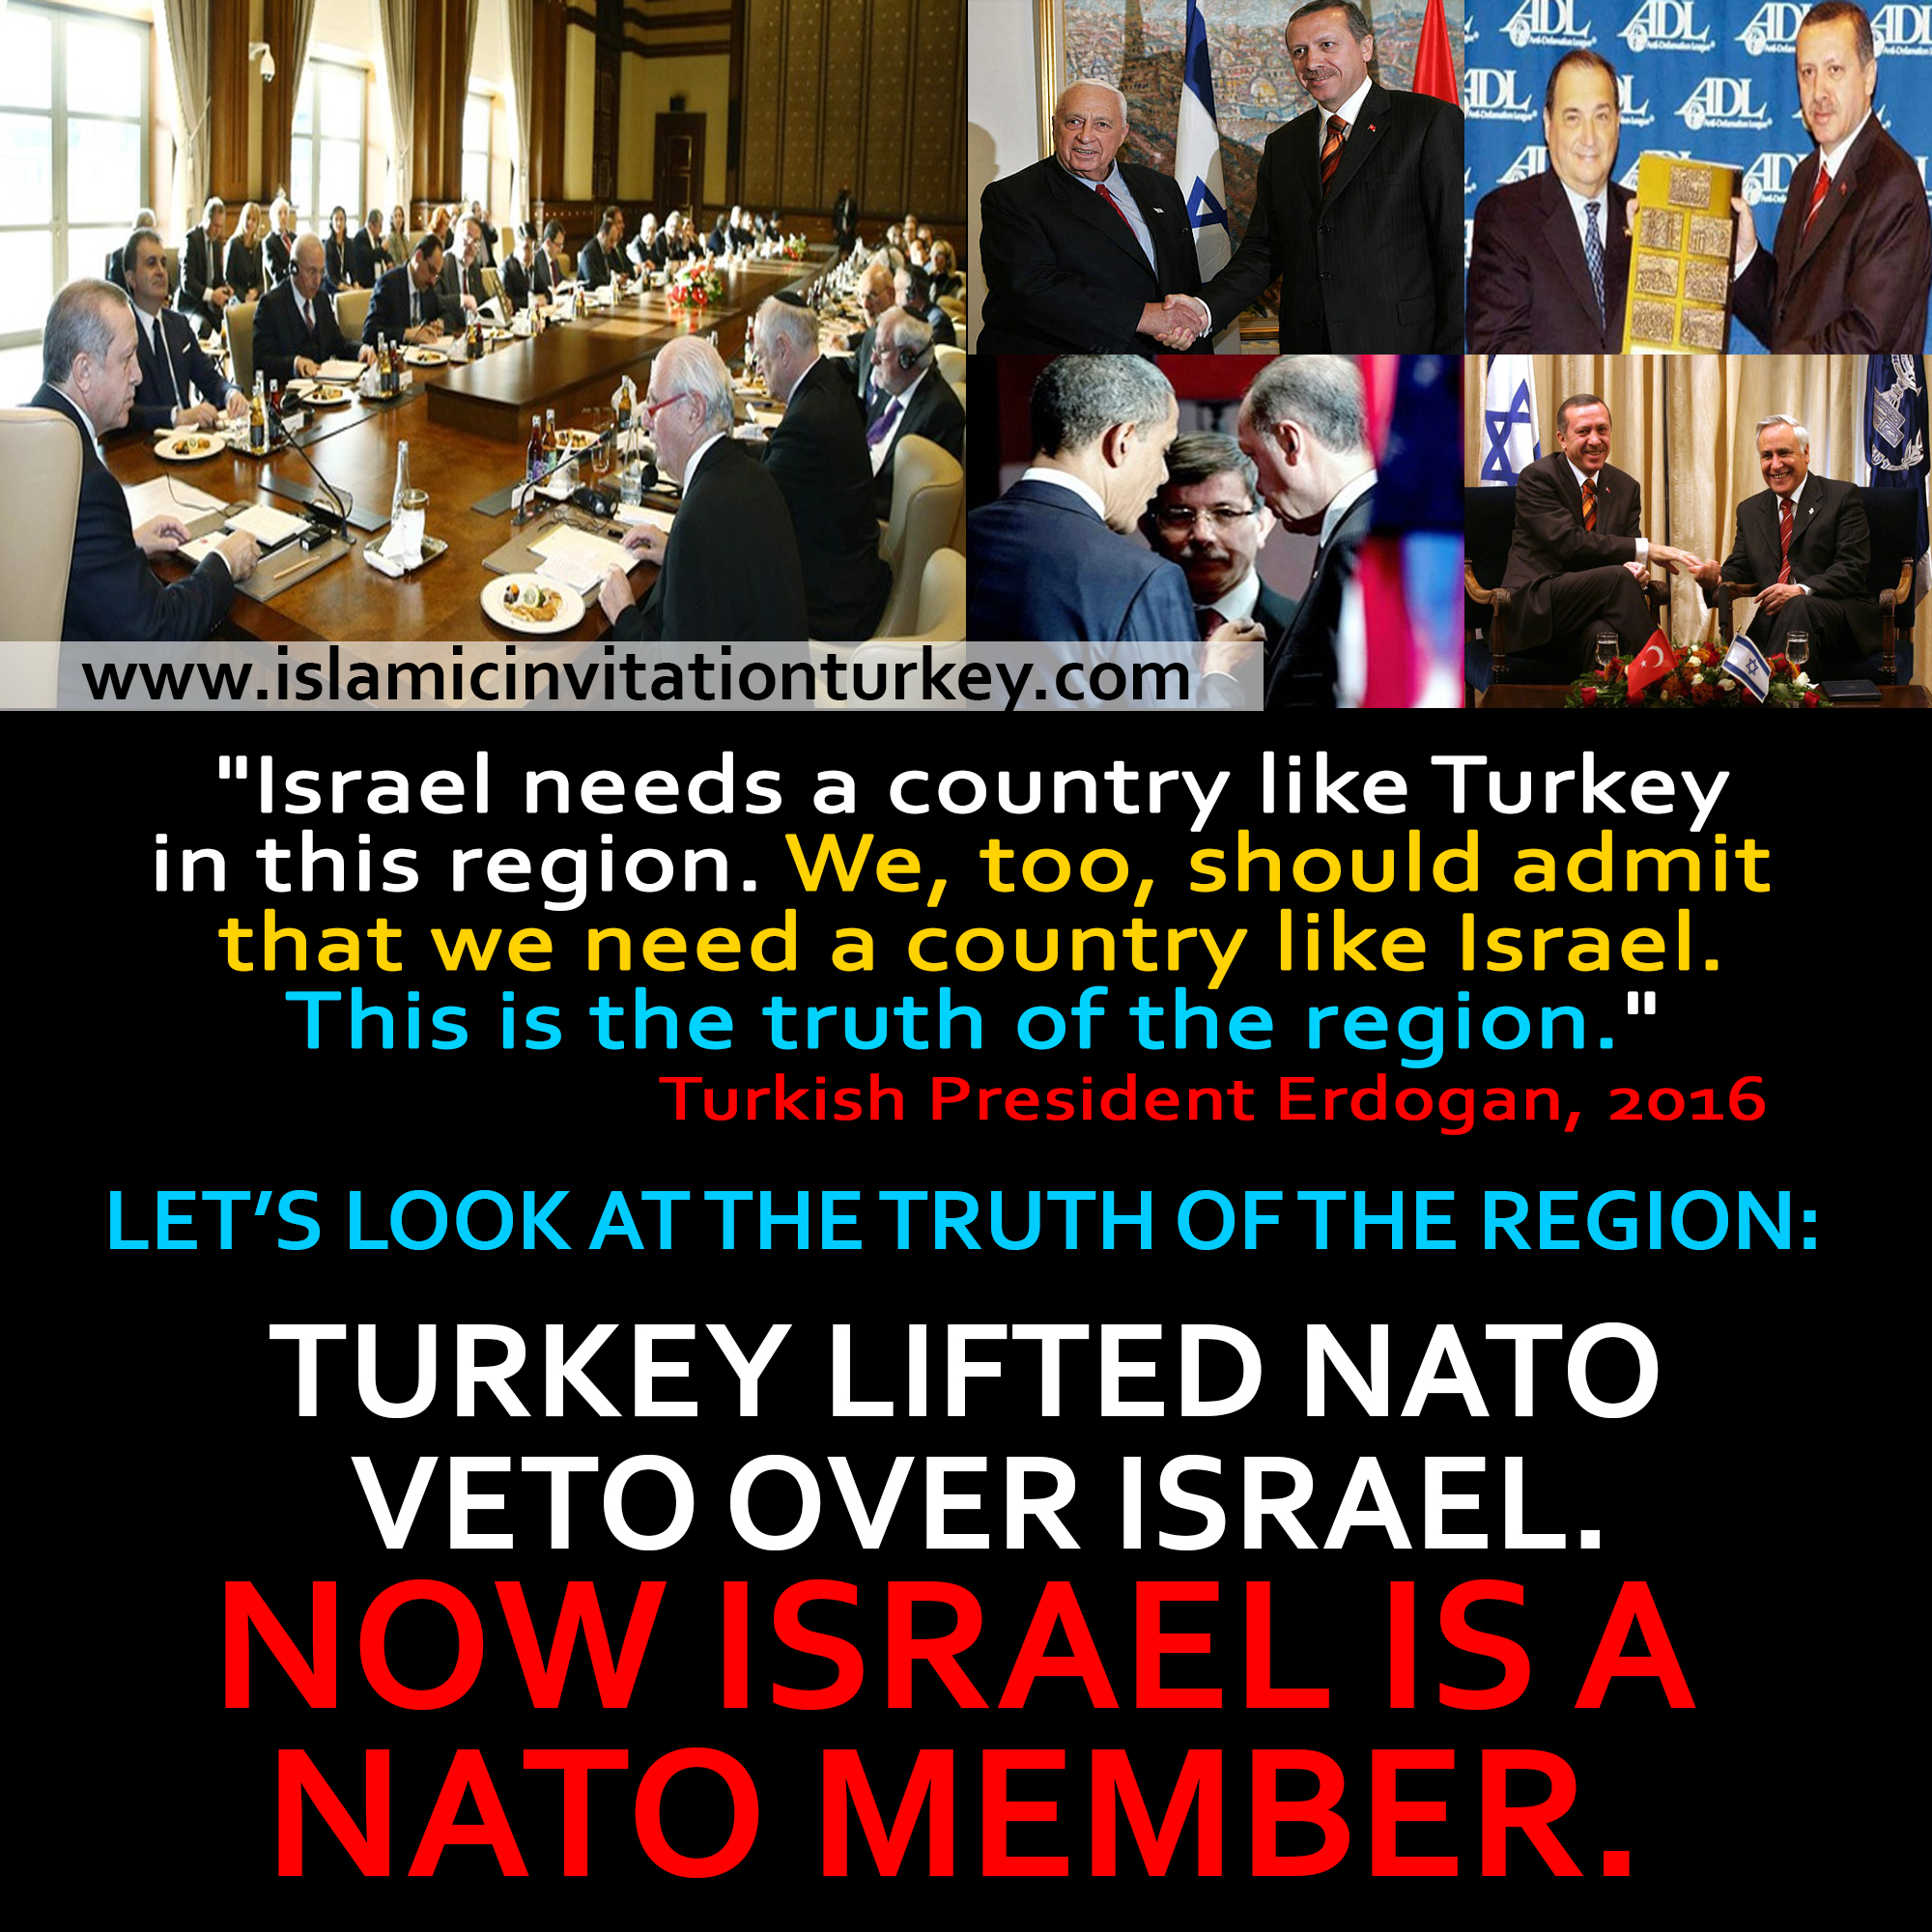 TURKEY LIFTED NATO VETO OVER ISRAEL